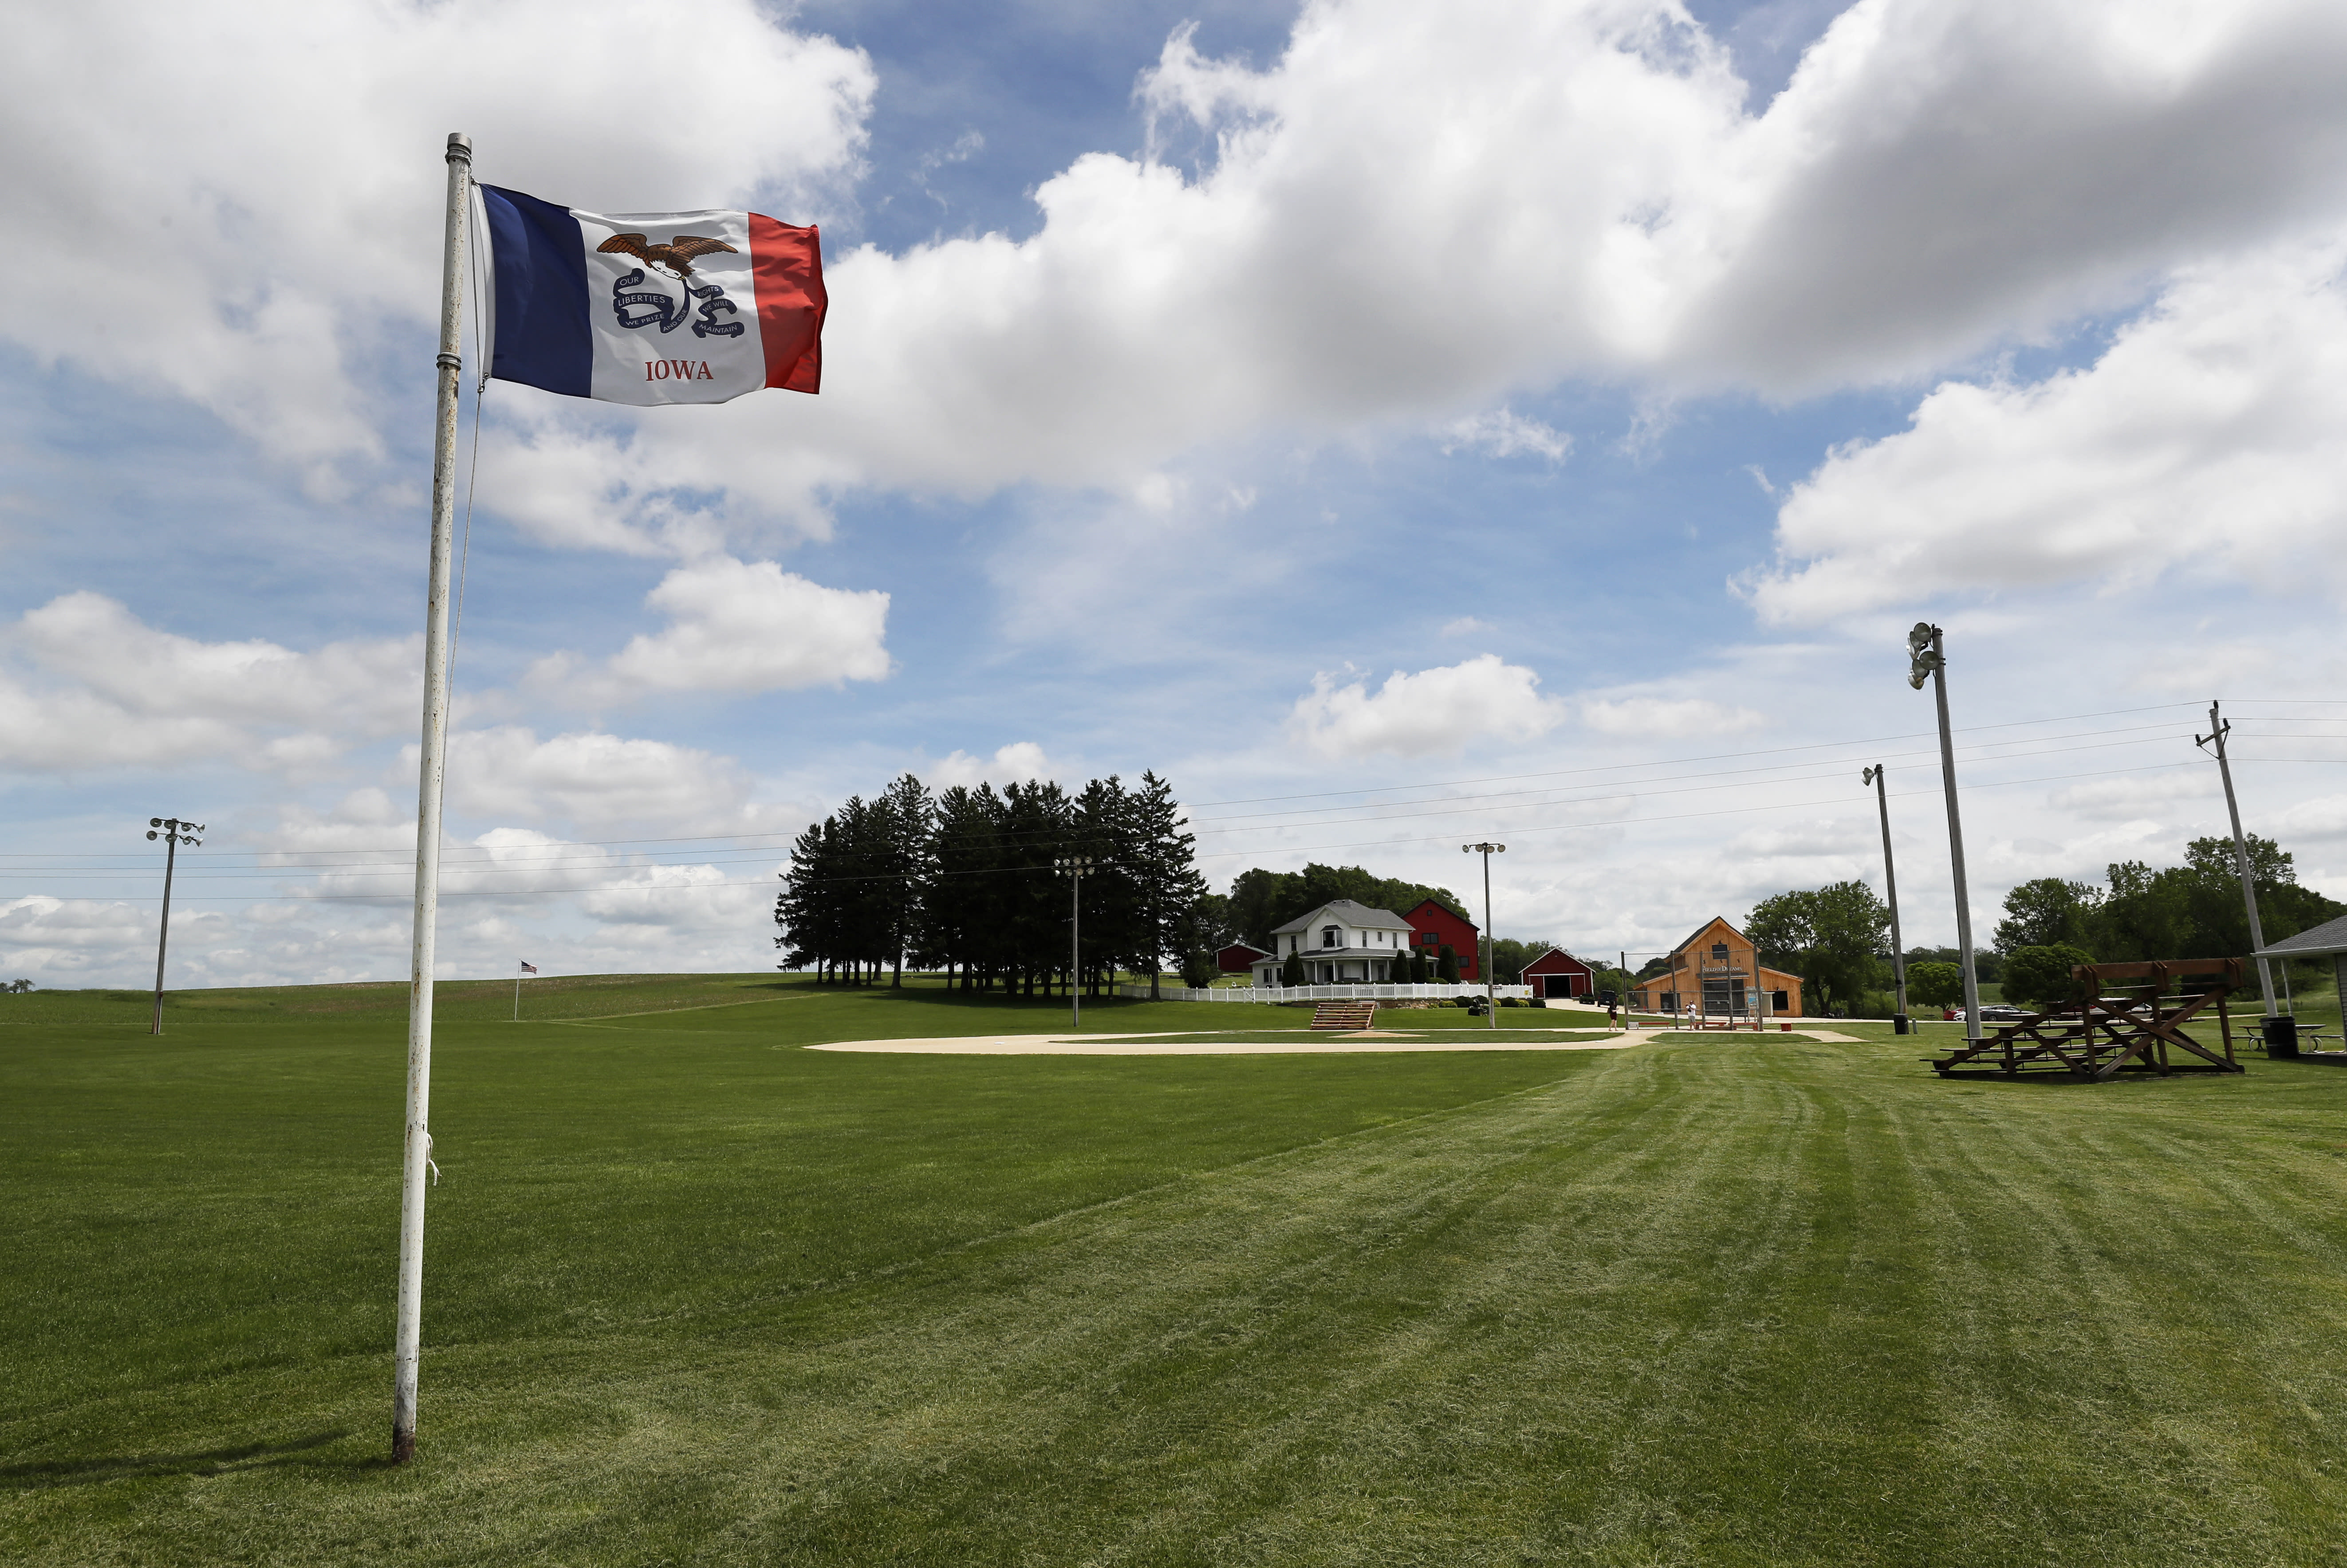 FILE - In this June 5, 2020, file photo, an Iowa flag waves in the wind over the field at the Field of Dreams movie site in Dyersville, Iowa. The St. Louis Cardinals have replaced the New York Yankees as the opponent for the Chicago White Sox in the Field of Dreams game on Aug. 13 at Dyersville. A temporary 8,000-seat stadium is nearing completion at the site, about 200 miles west of Chicago, adjacent to where the movie was filmed on a diamond in a cornfield. This would be the major league game played in Iowa. (AP Photo/Charlie Neibergall, File)